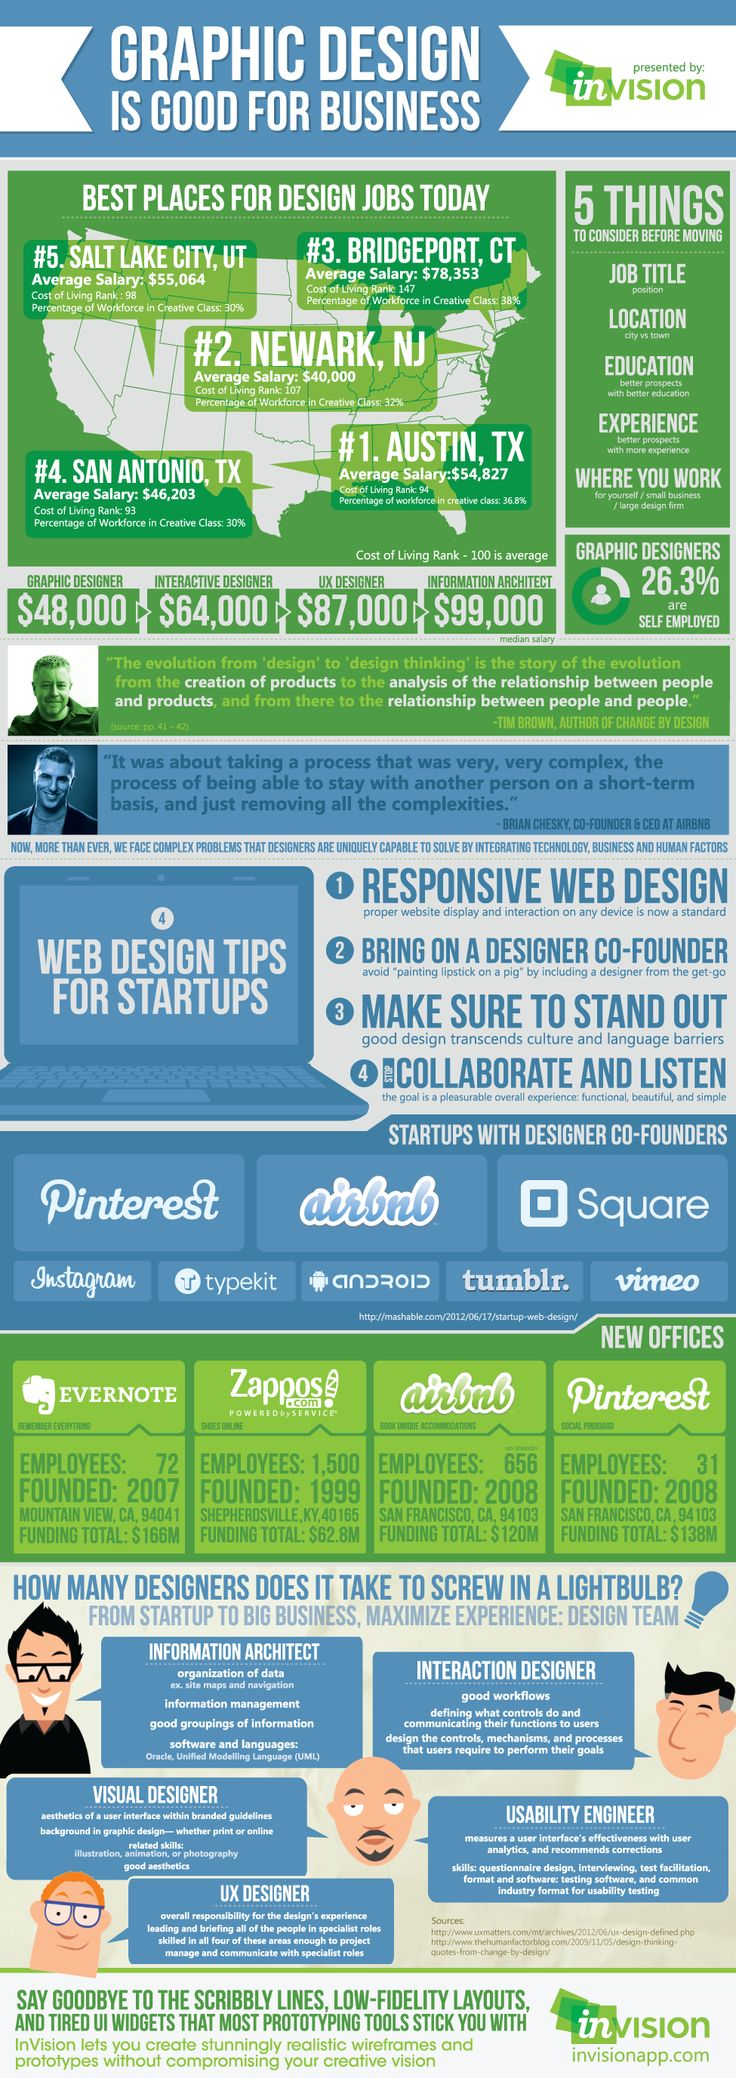 107 best Design images on Pinterest | Graphics, Graph design and ...